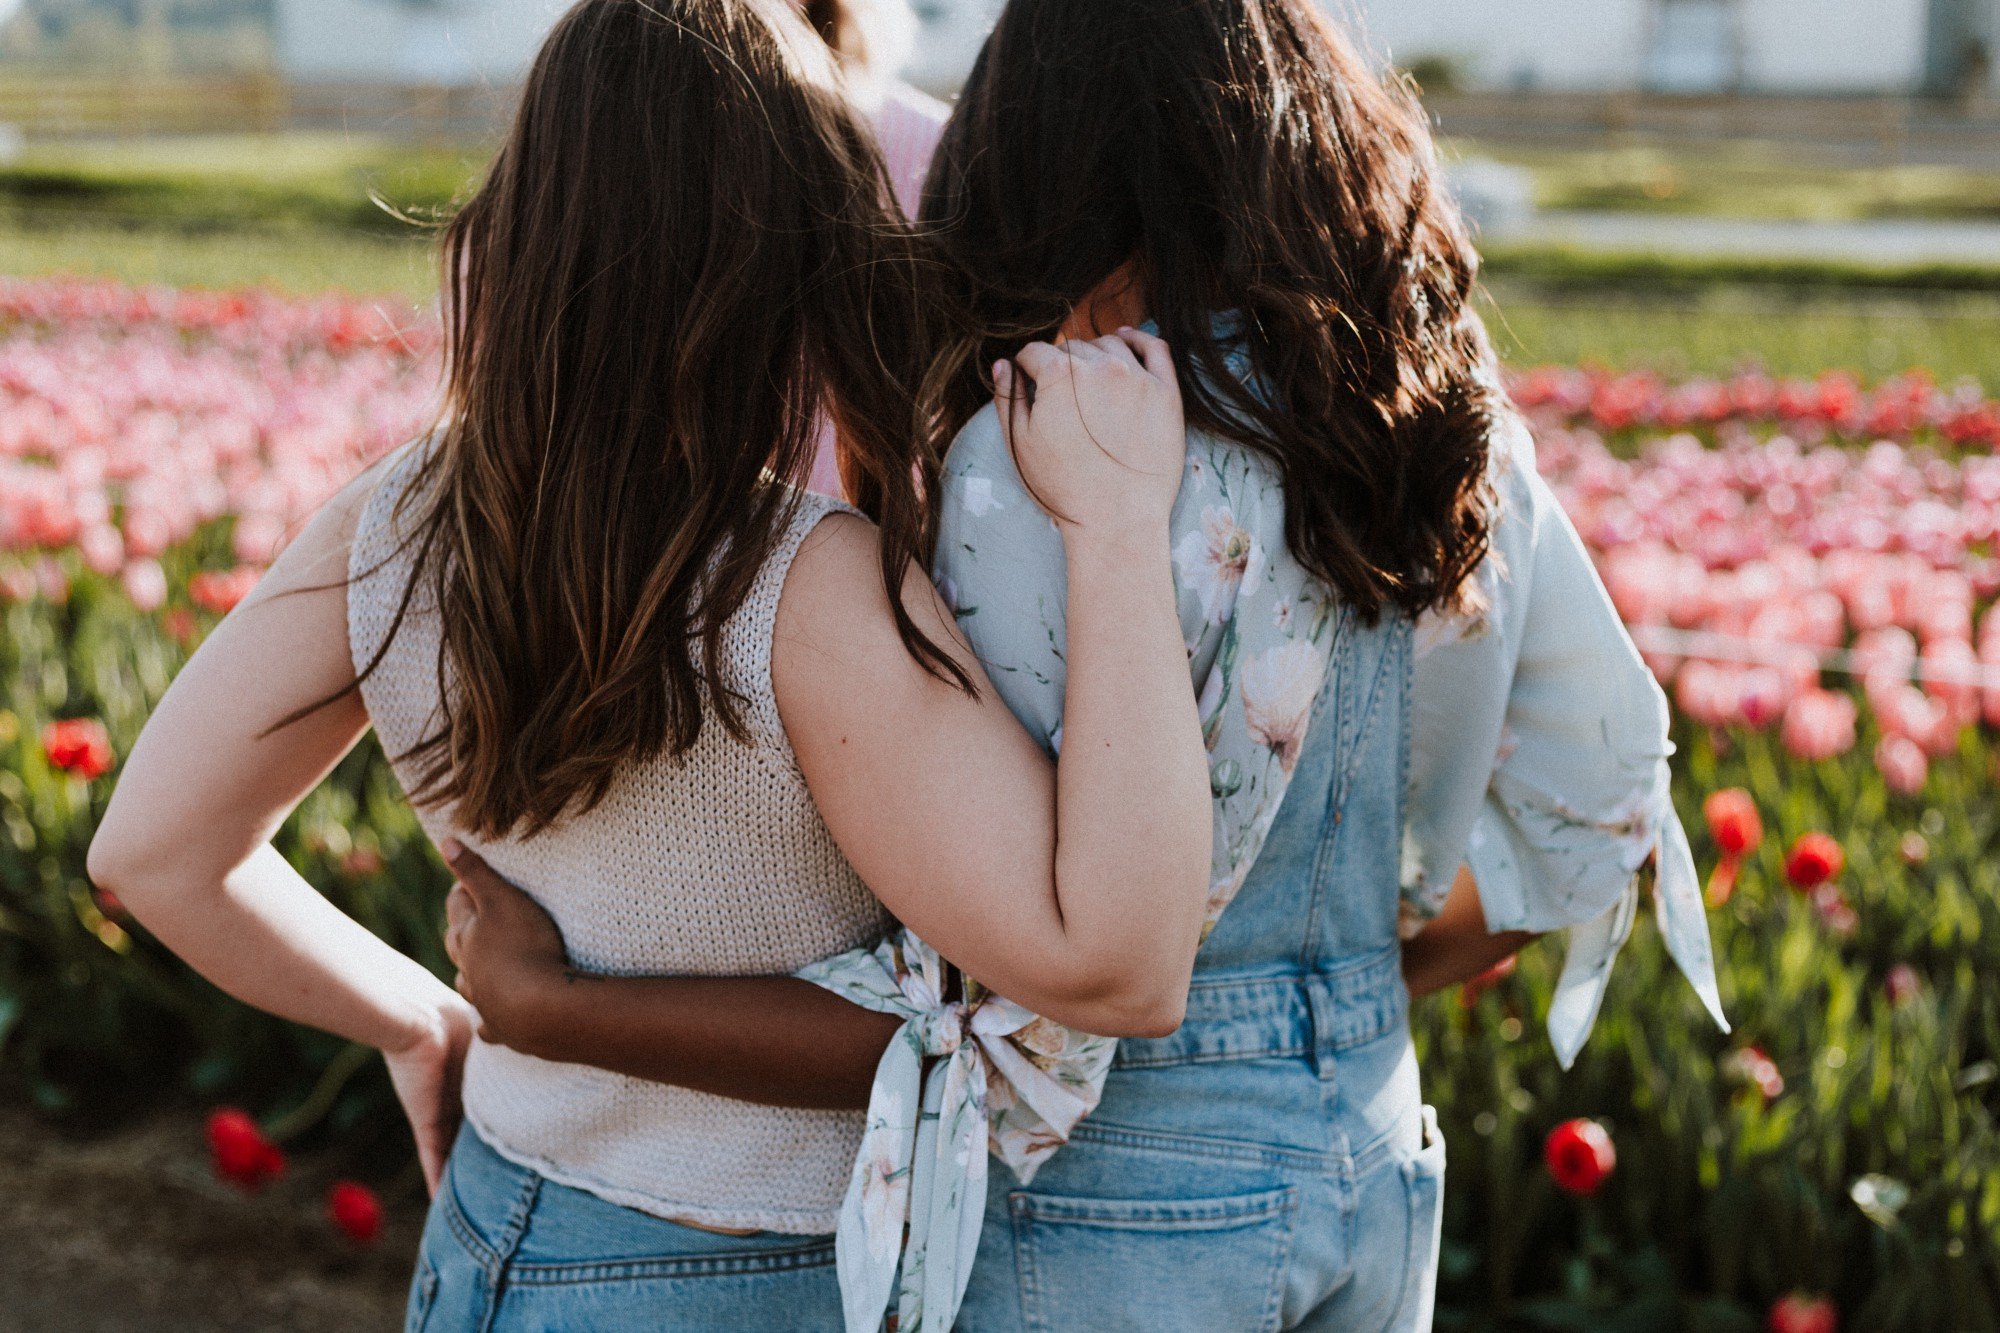 Two female friends with arms wrapped around each other looking out at a field of flowers